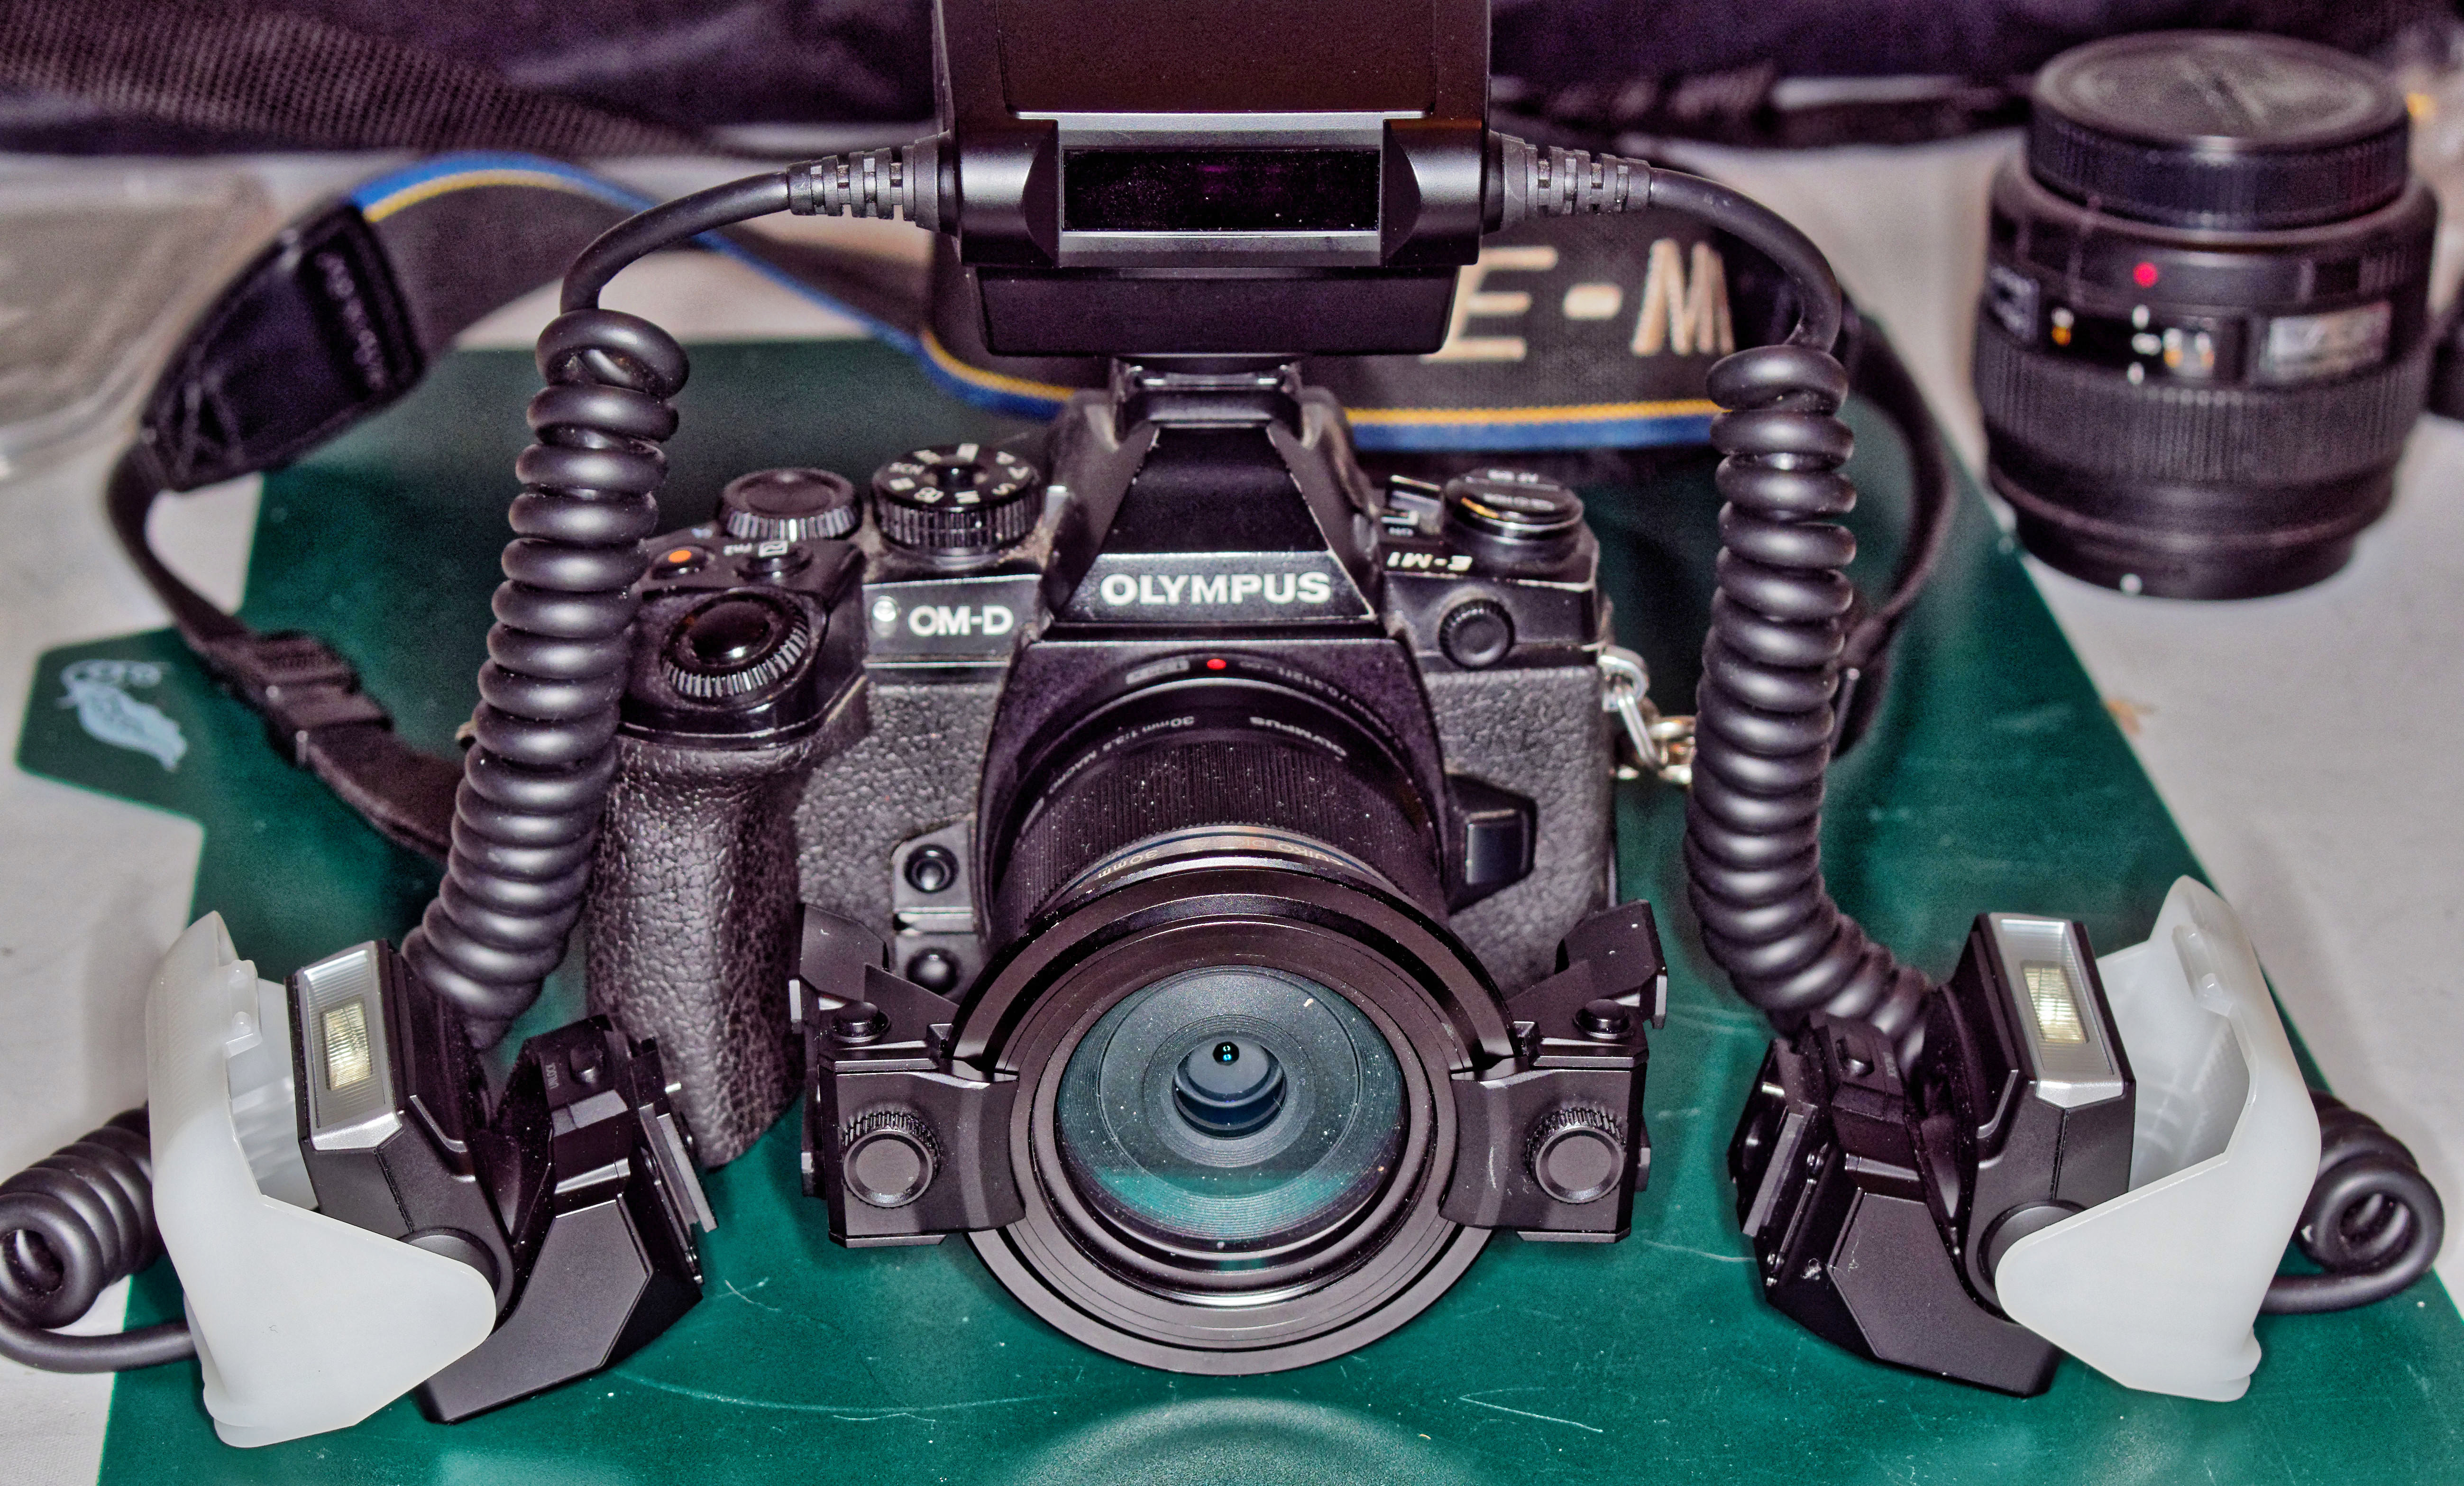 This should be E-M1-STF-8.jpeg.  Is it missing?